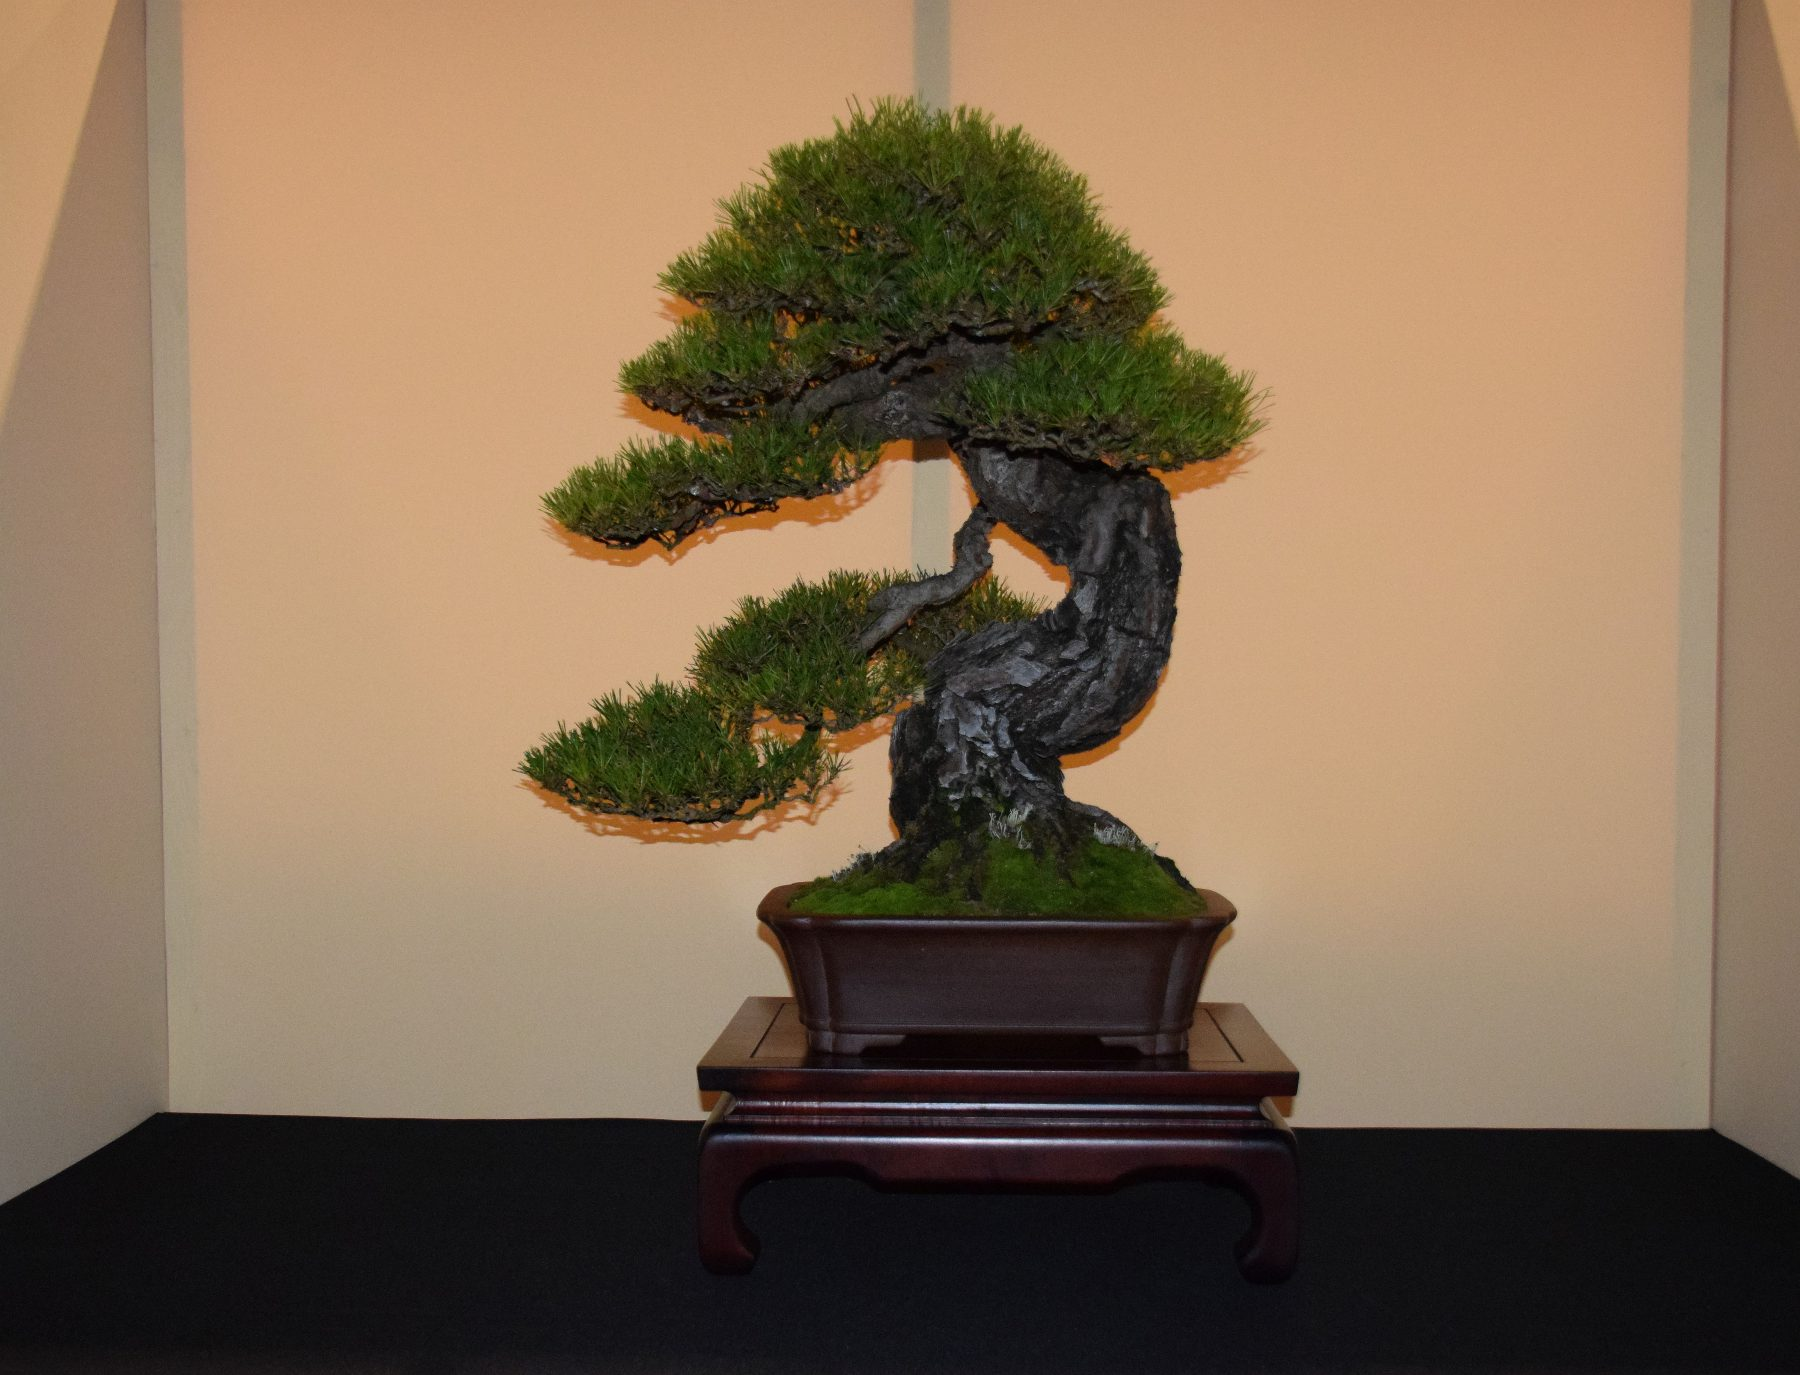 euk-bonsai-ten-2016-jp-polmans-collectie-002